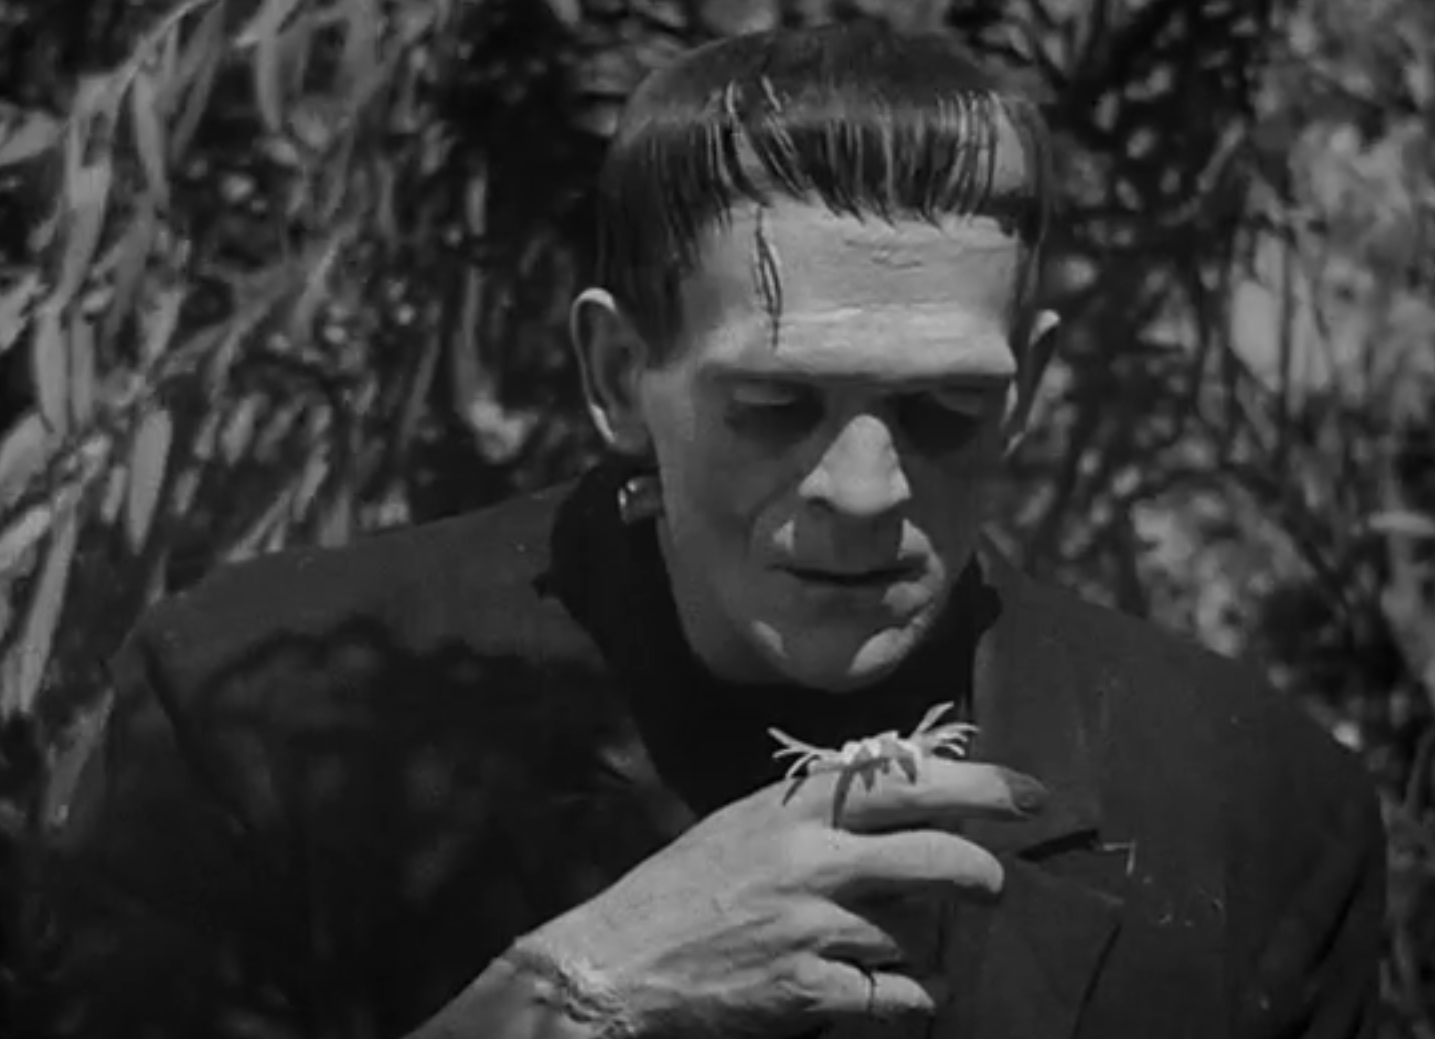 frankenstein who is the real Writing a paper on frankenstein, and i need like specific examples of how victor is the real monster as opposed to his creation.